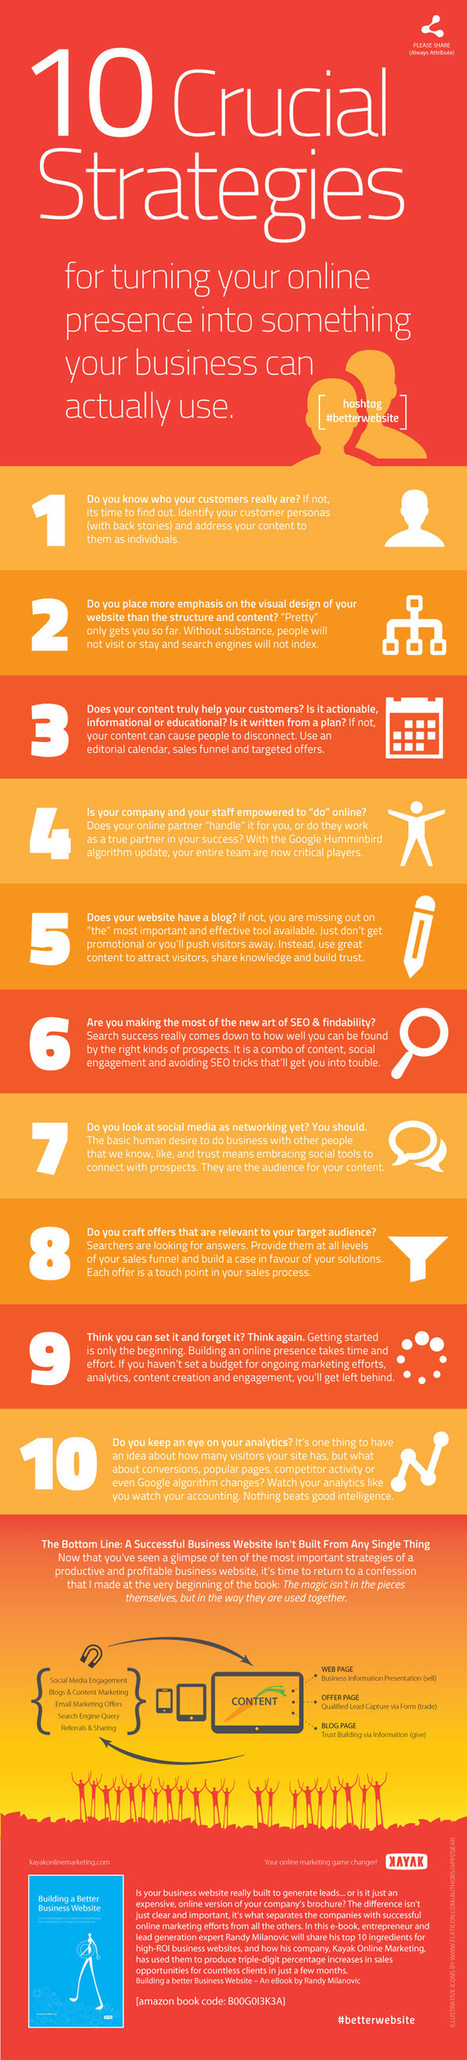 10 estrategias cruciales para una buena web de empresa #infografia #infographic #marketing | Seo, Social Media Marketing | Scoop.it